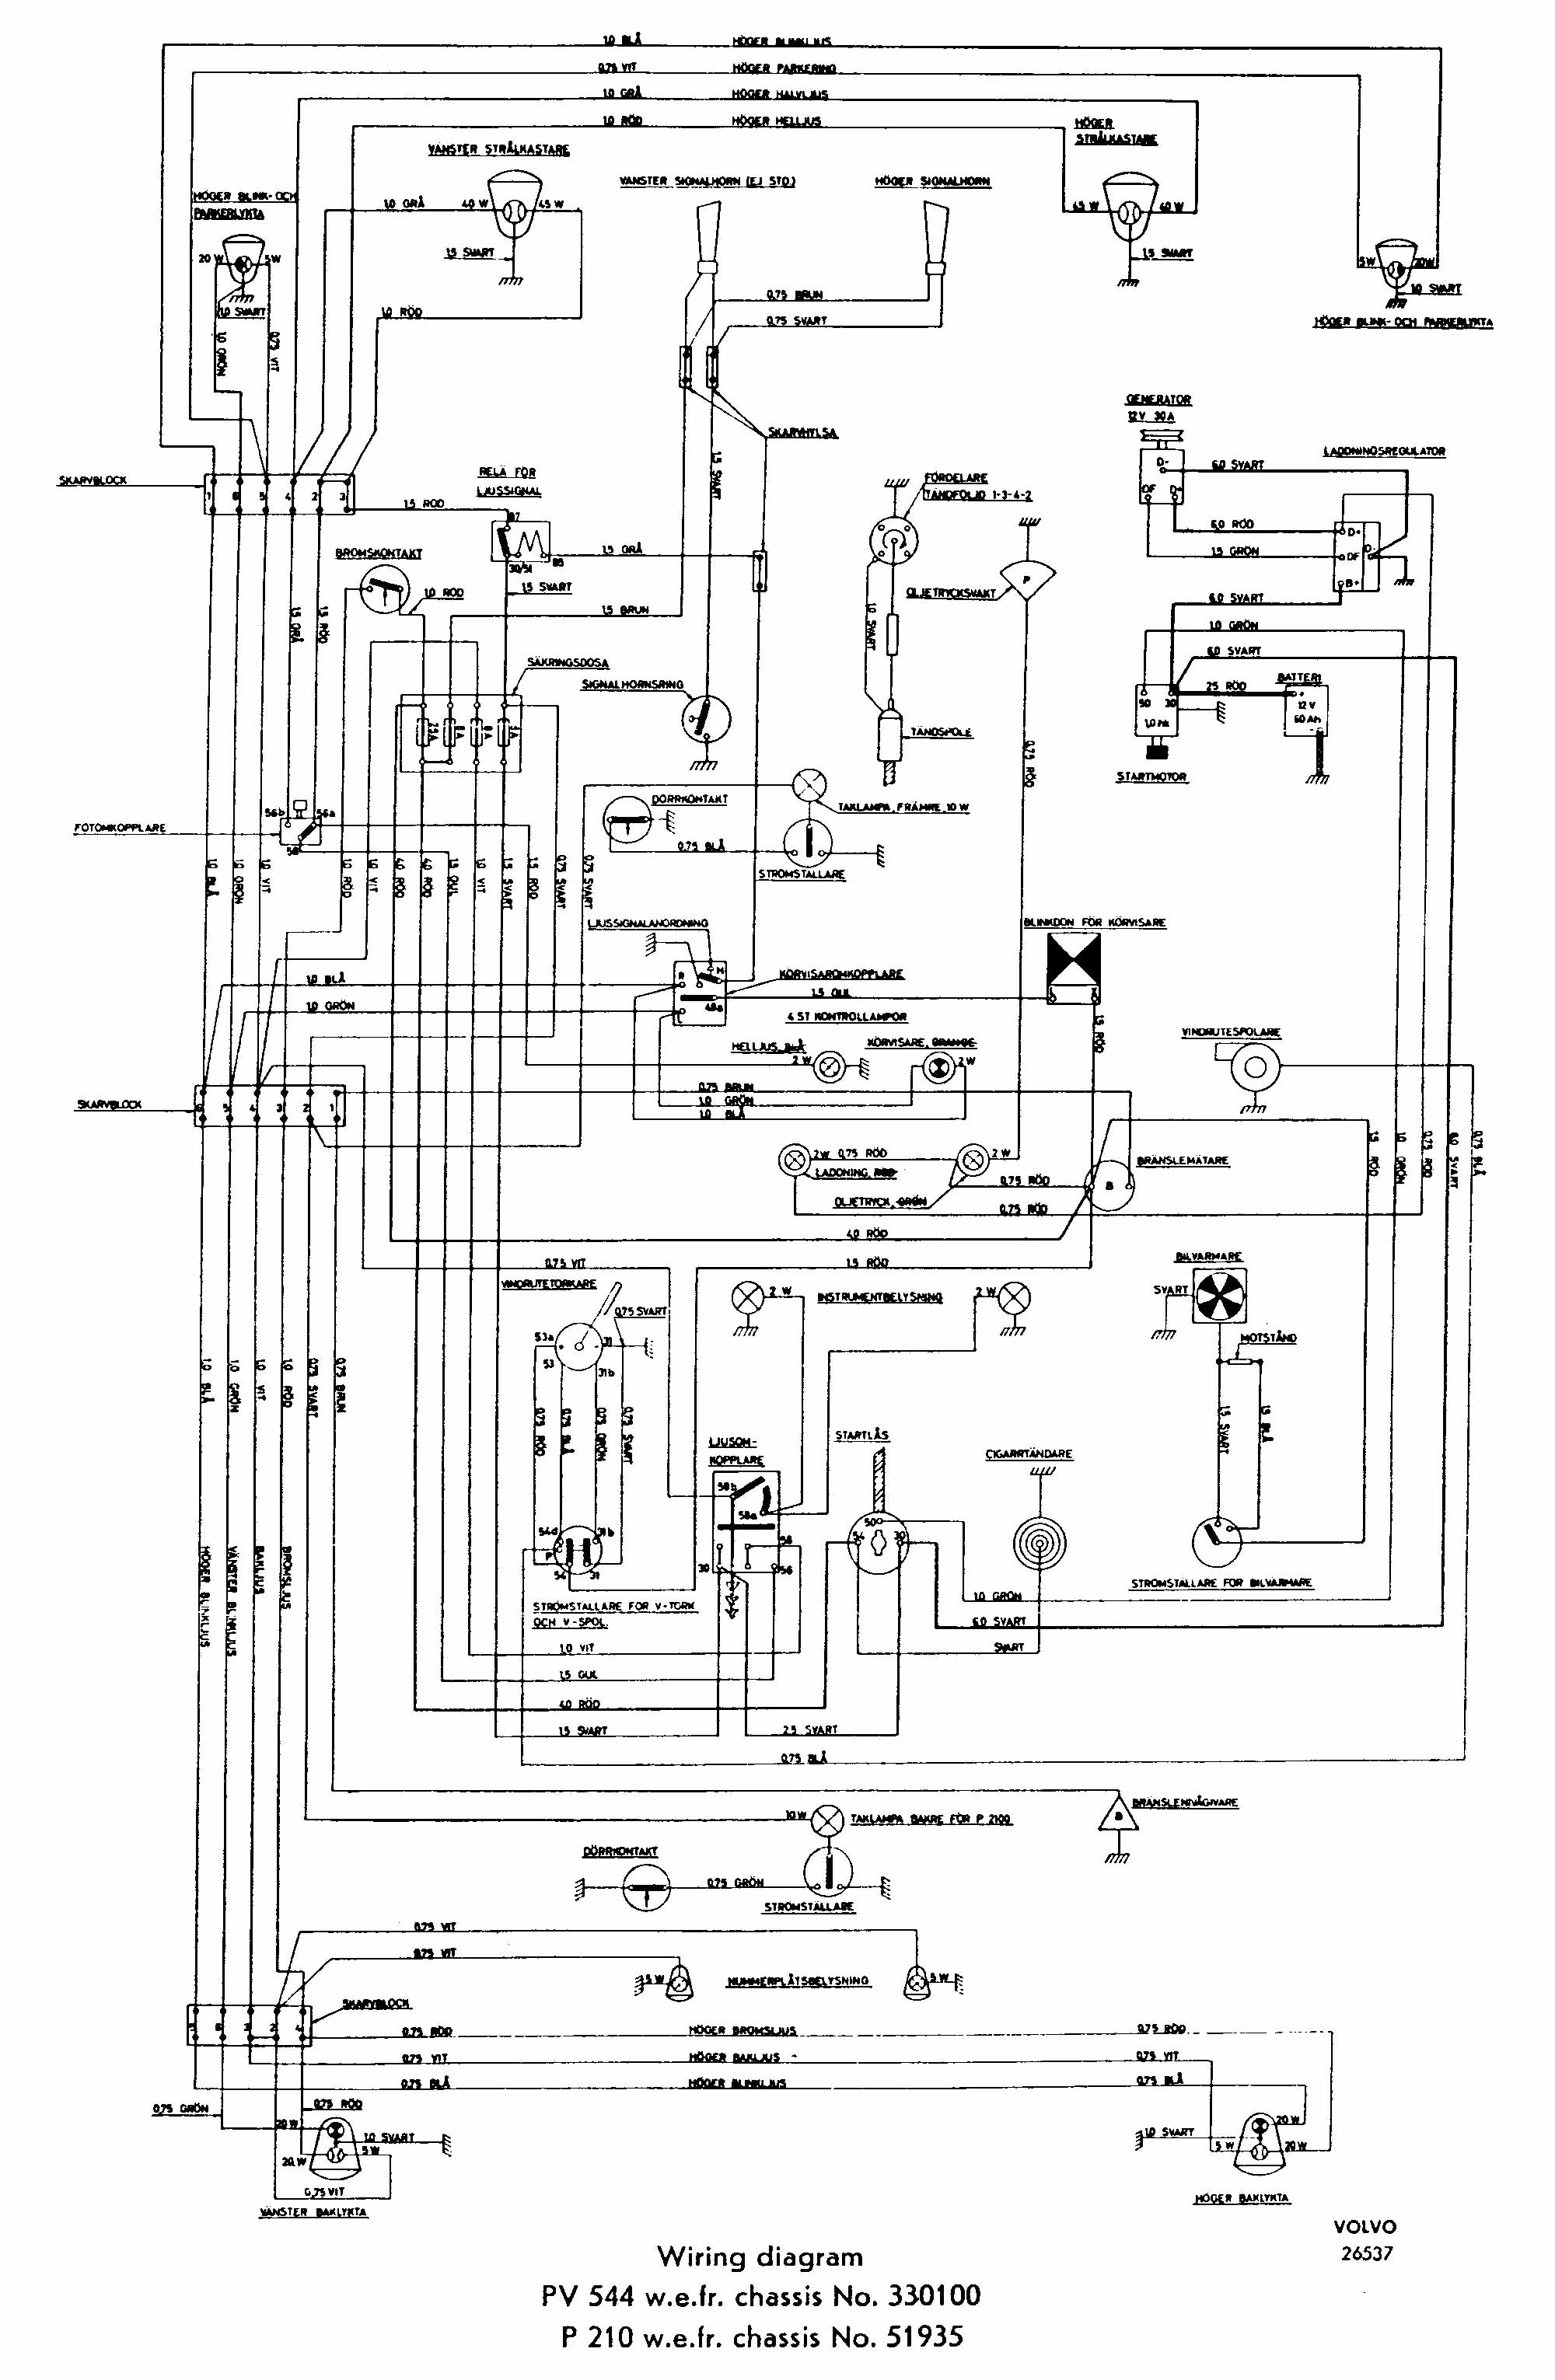 volvo b20 engine diagram volvo wiring diagrams